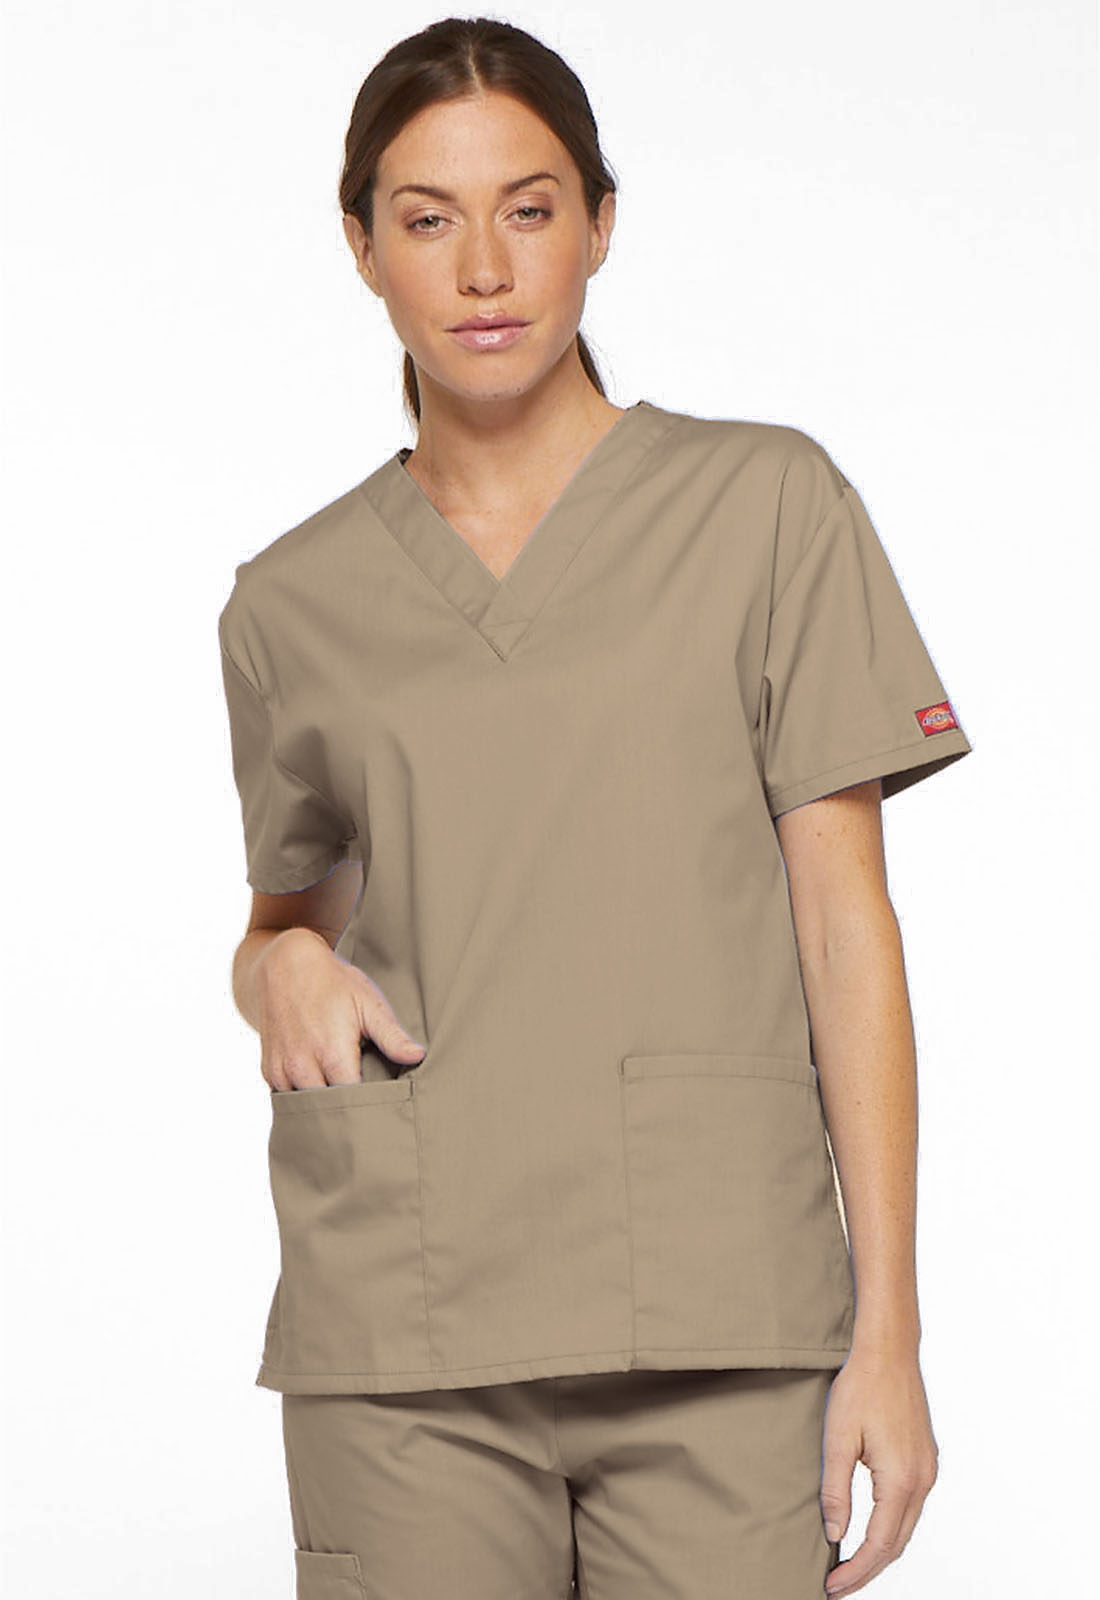 003a760ed9ee Dickies EDS Signature V-Neck Top in Dark Khaki from Dickies Medical